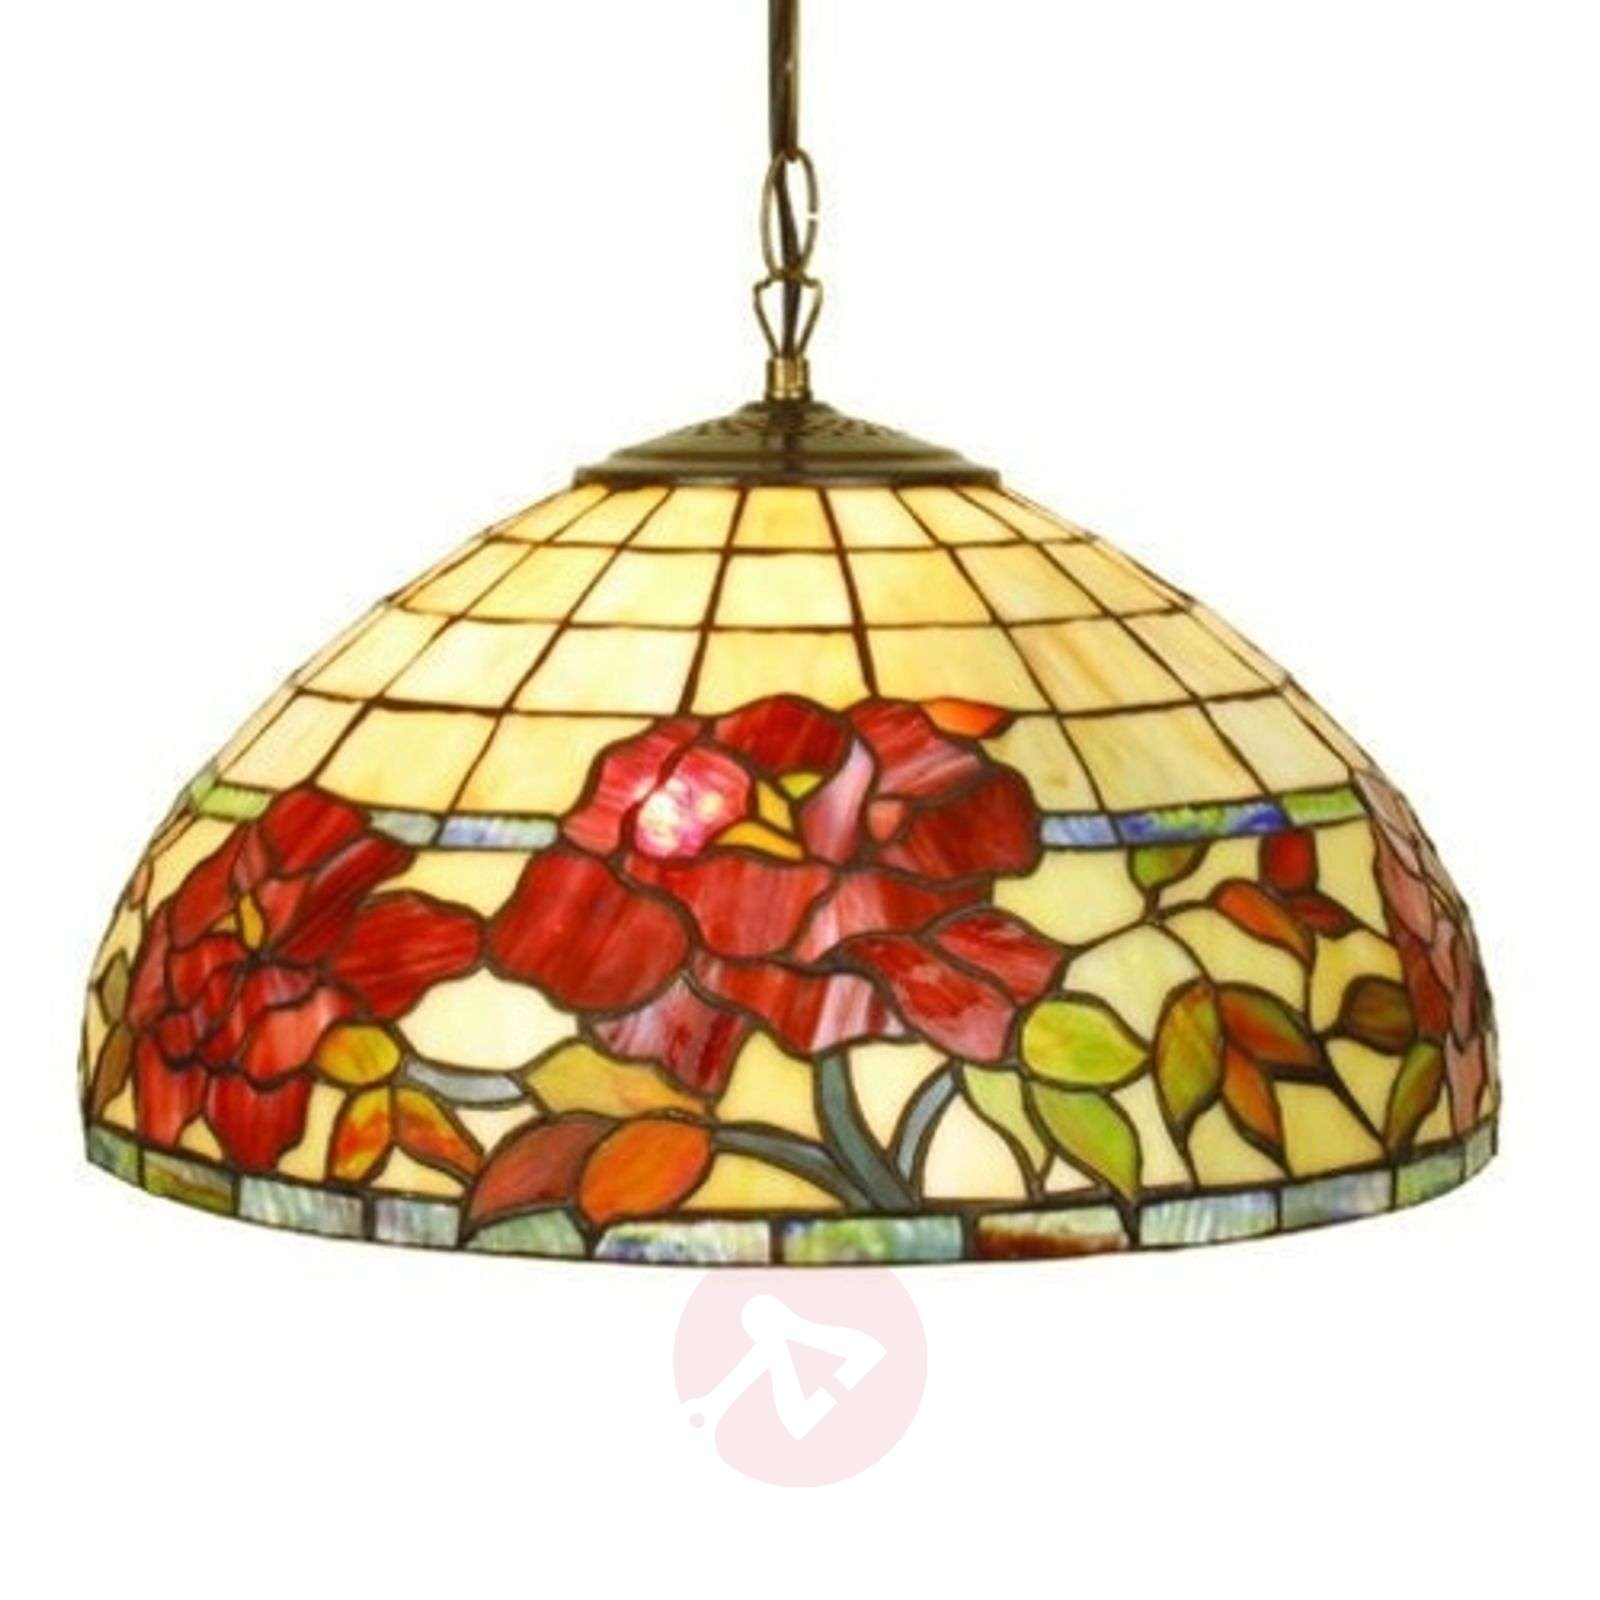 ESMEE ornate hanging light, 1-bulb-1032172-01